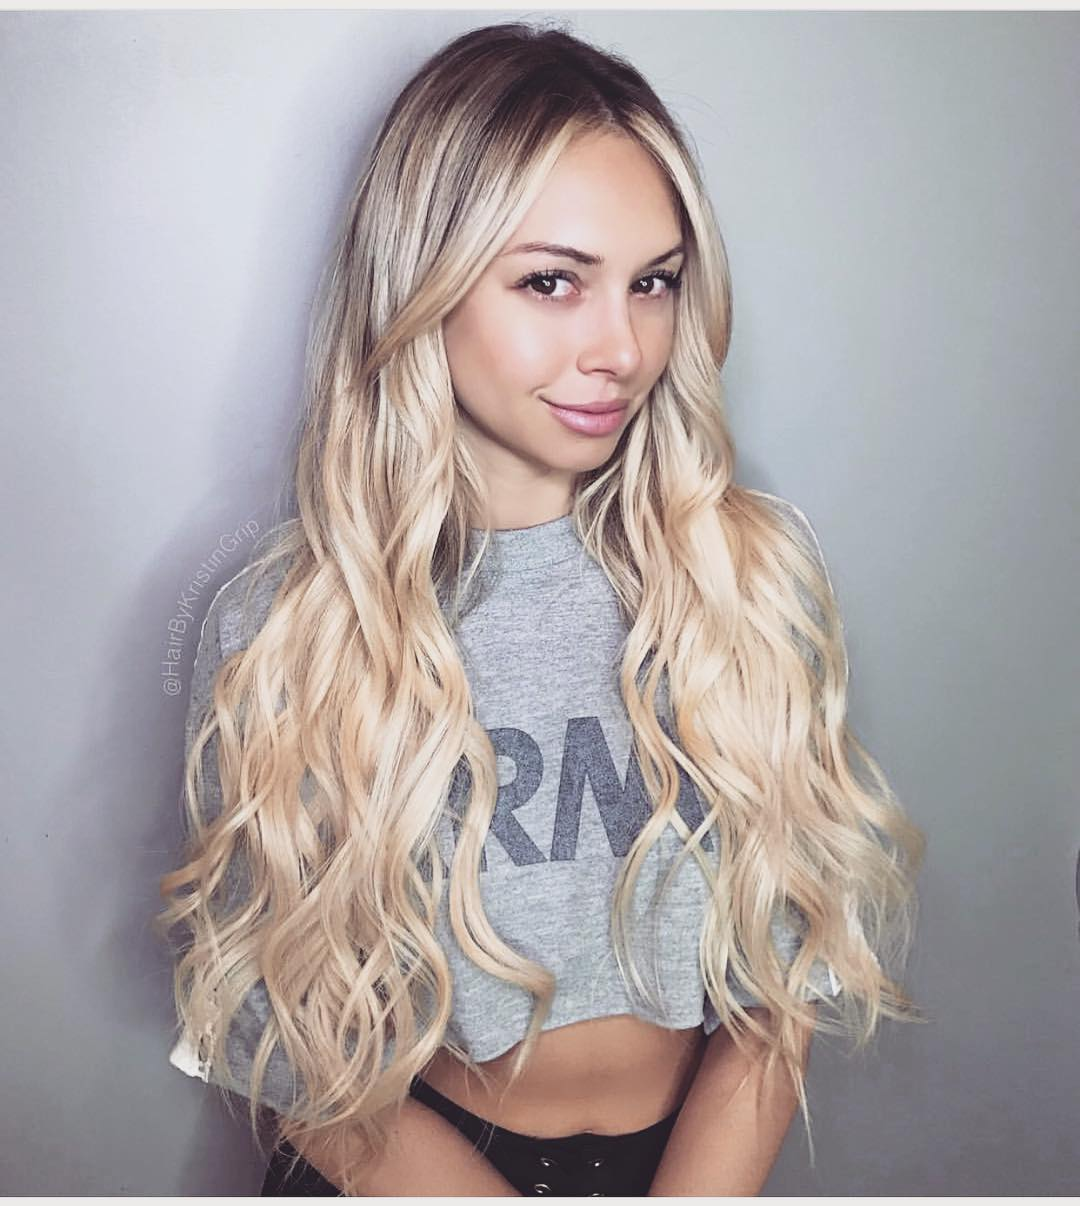 Corinne Olympios reveals she\u0027s dating someone new -- and not from ...